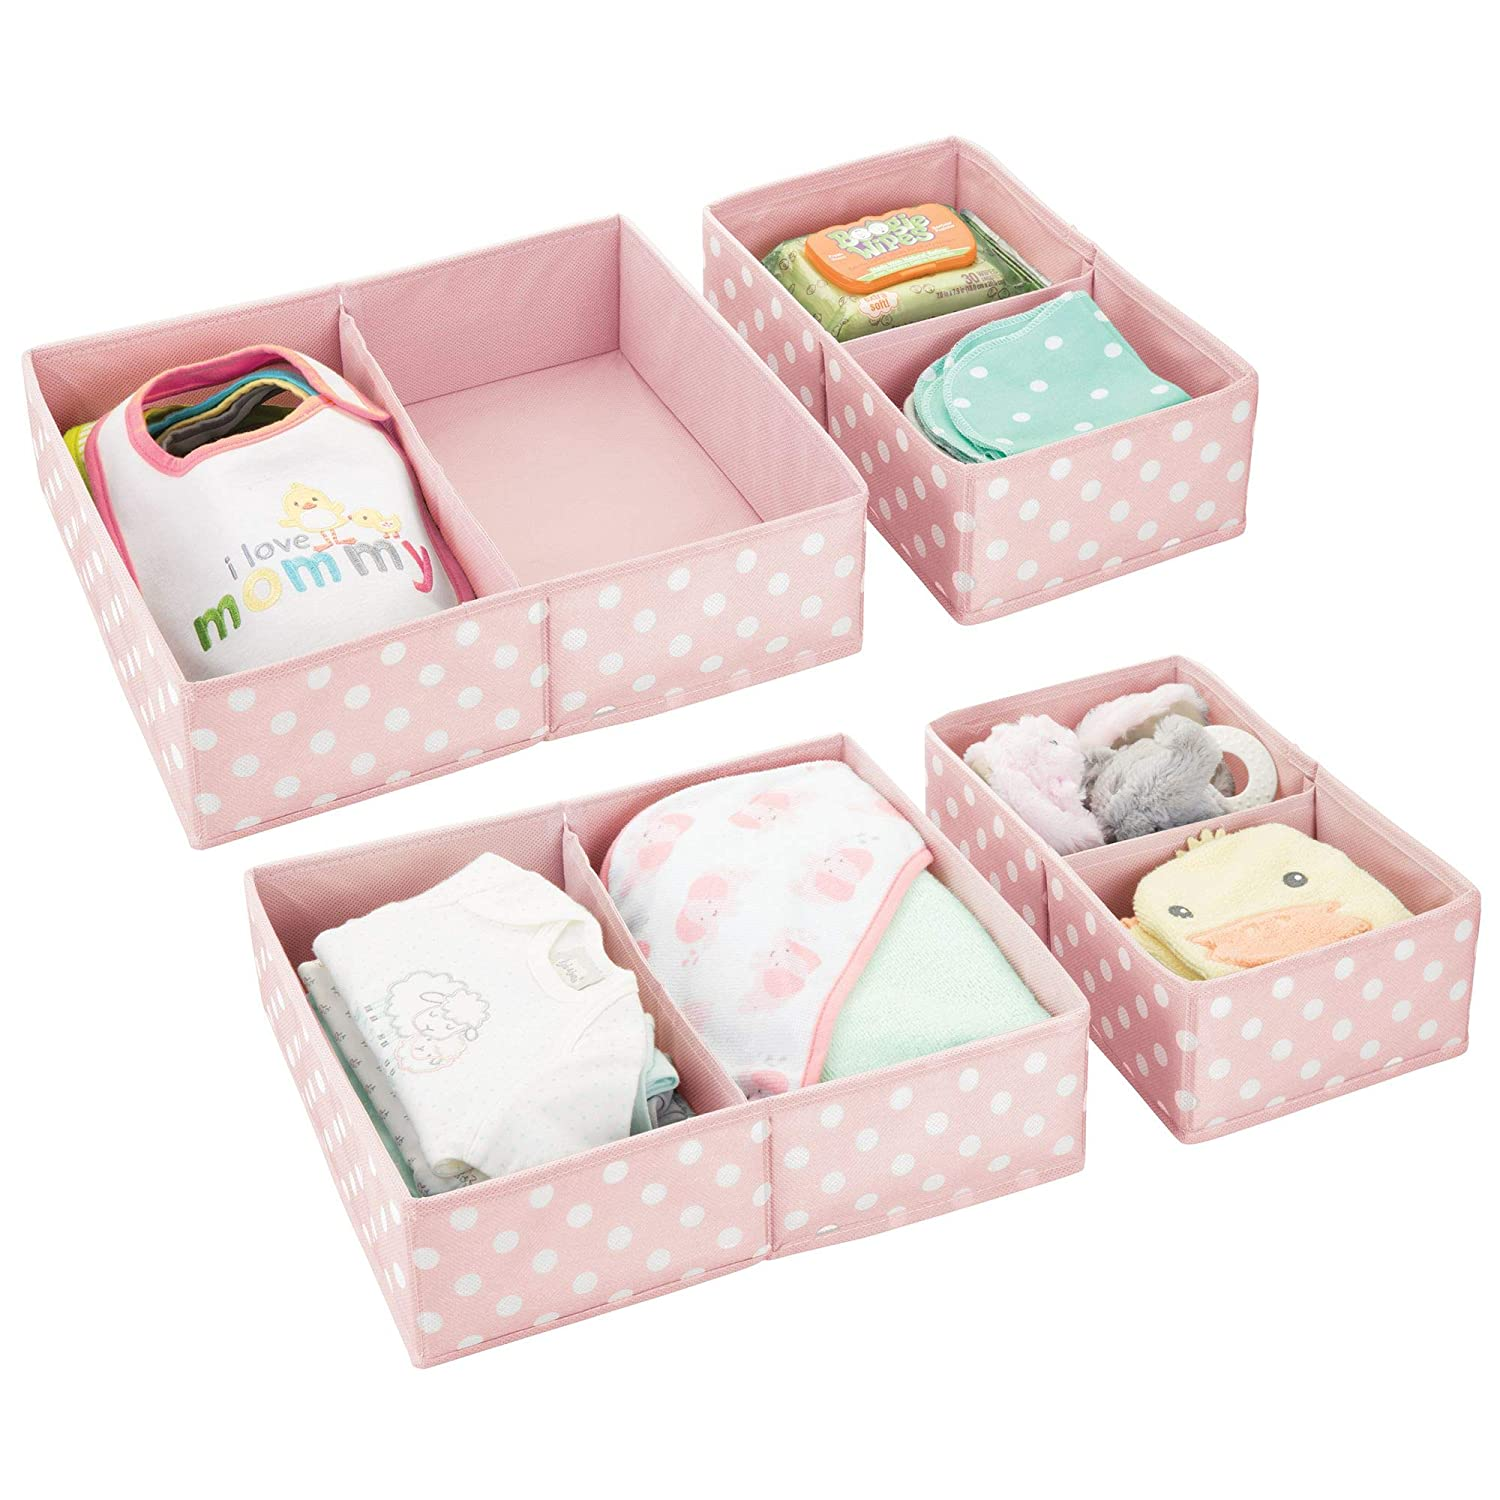 mDesign Soft Fabric Dresser Drawer and Closet Storage Organizer Set for Child/Kids Room, Nursery Divided Organizers in Two Sizes - Fun Polka Dot Pattern, Set of 4, Light Gray with White Dots MetroDecor